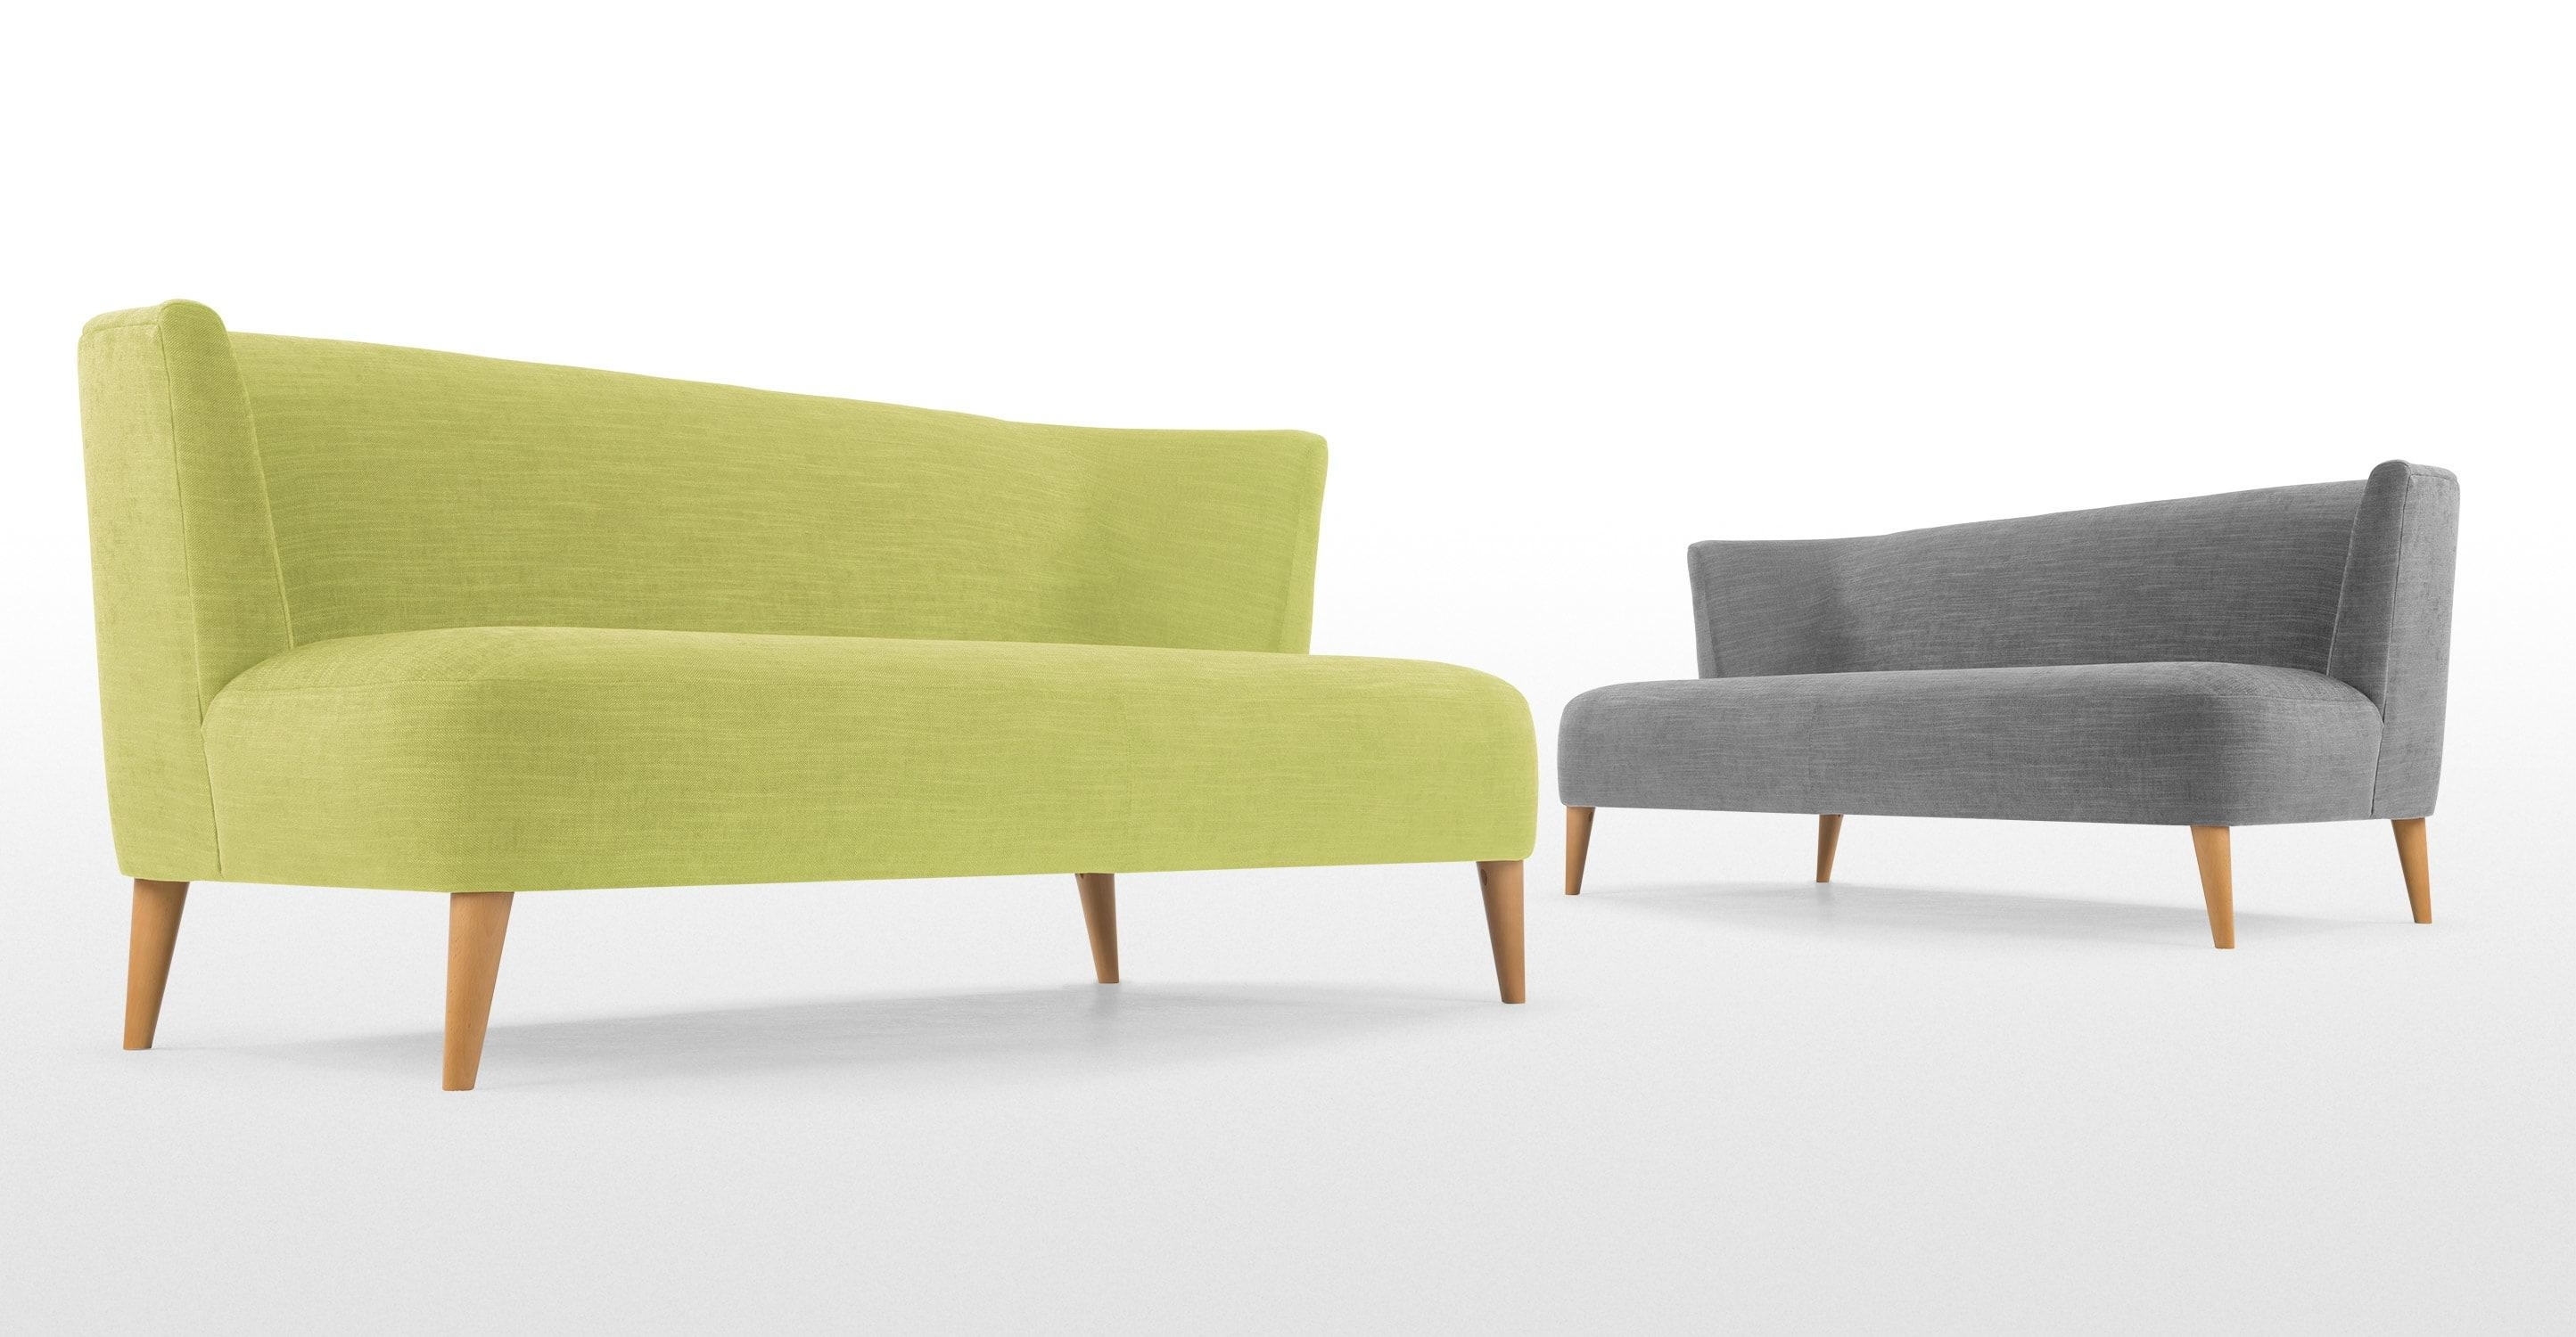 Chartreuse Sofa 27 With Chartreuse Sofa | Jinanhongyu throughout Chartreuse Sofas